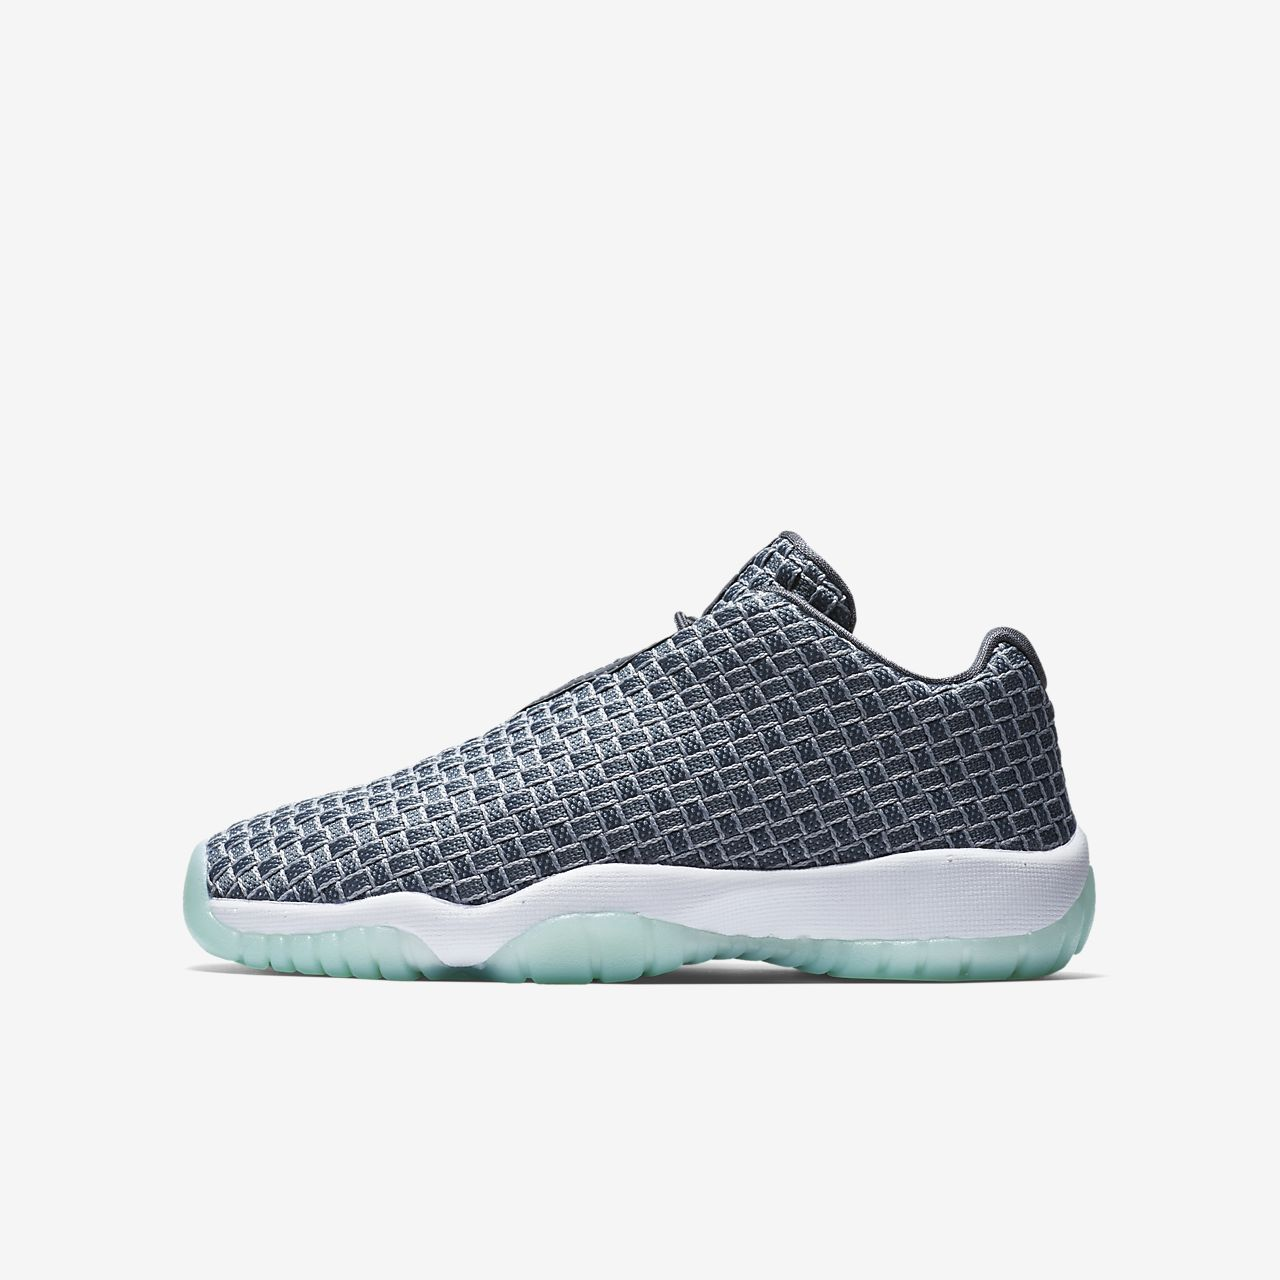 478c084f548 ... sweden air jordan future low kids shoe a3287 30ce1 coupon code ...